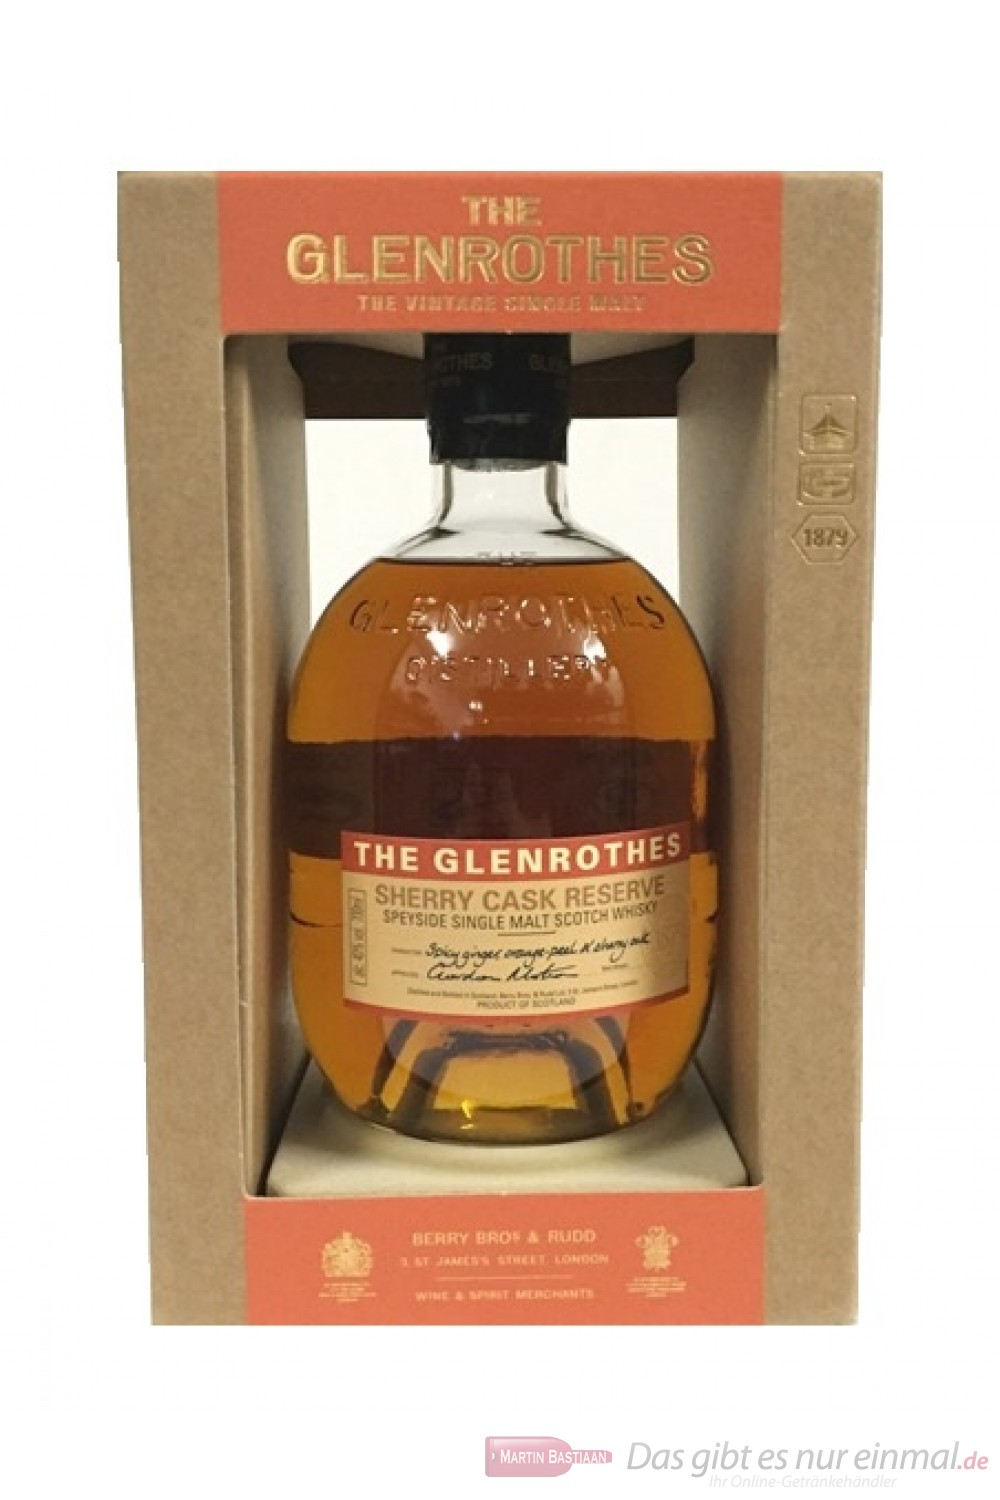 The Glenrothes Sherry Cask Reserve